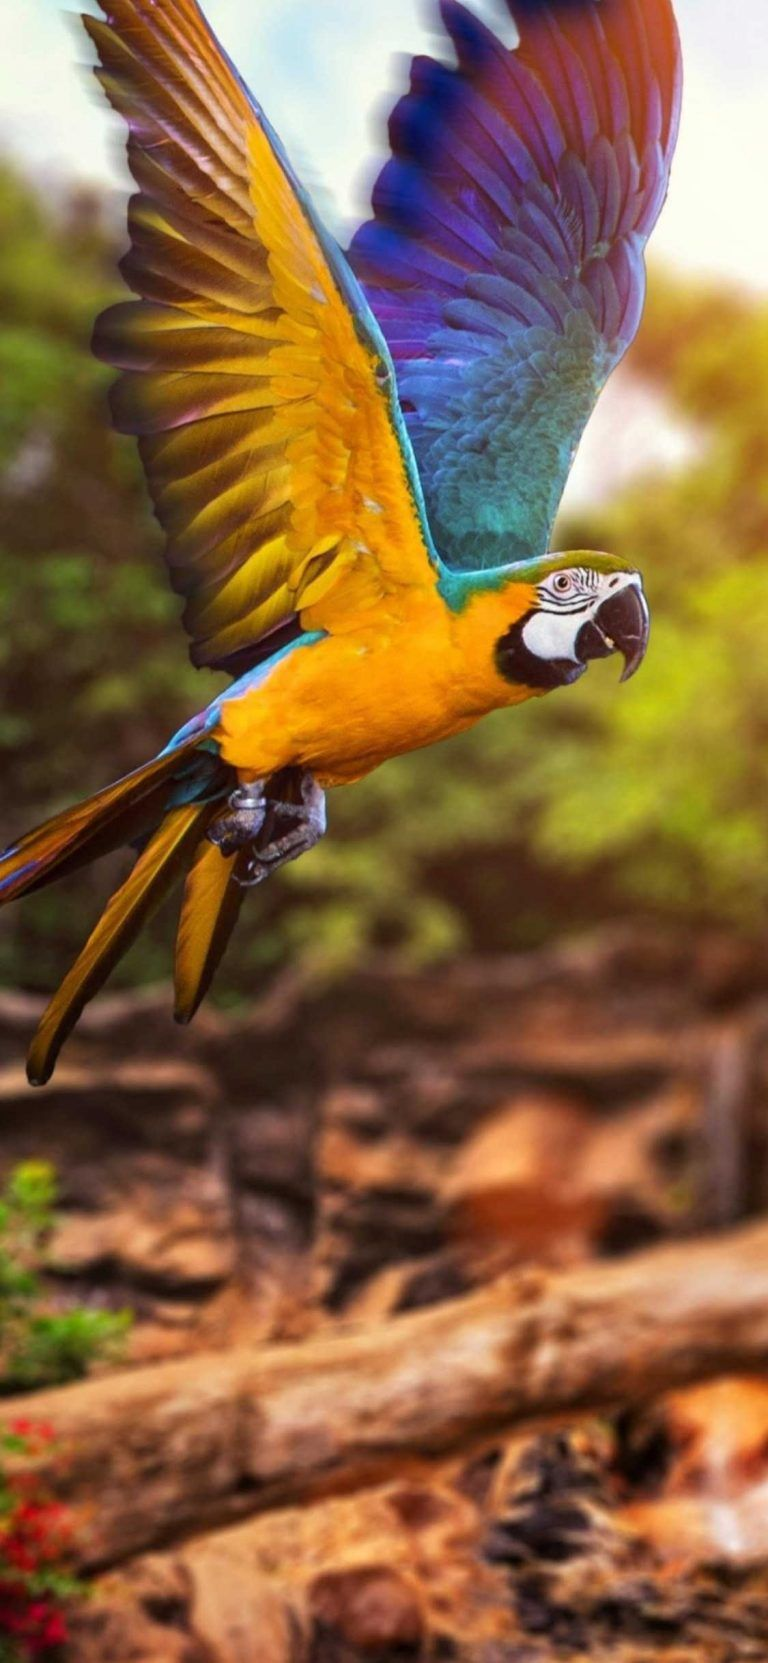 Beautiful Wallpapers For Apple Iphone X Iphone Wallpaper Iphone Wallpaper Tumblr Iphone Wallpaper Quotes Iphon Beautiful Wallpapers Parrot Beautiful Birds